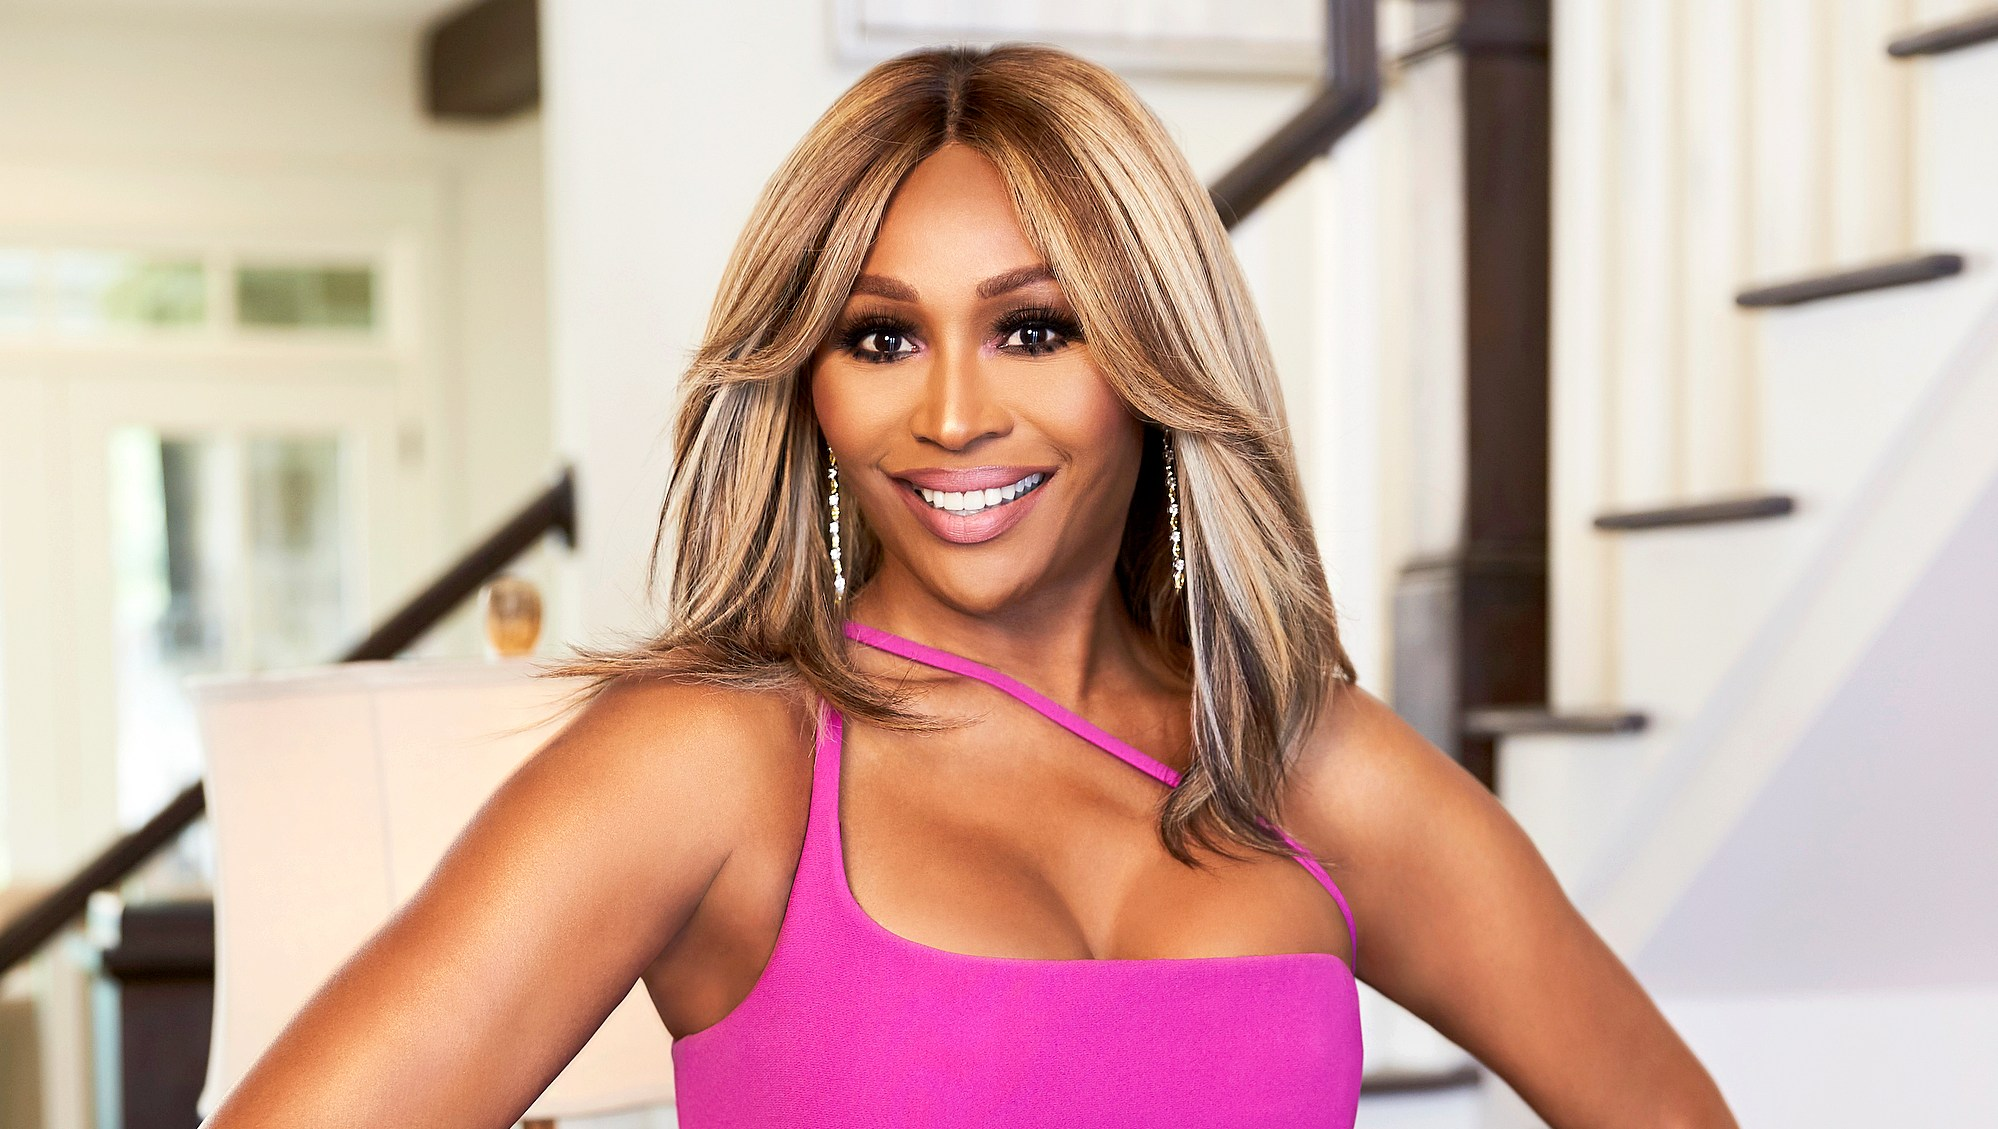 'Real Housewives of Atlanta' star Cynthia Bailey